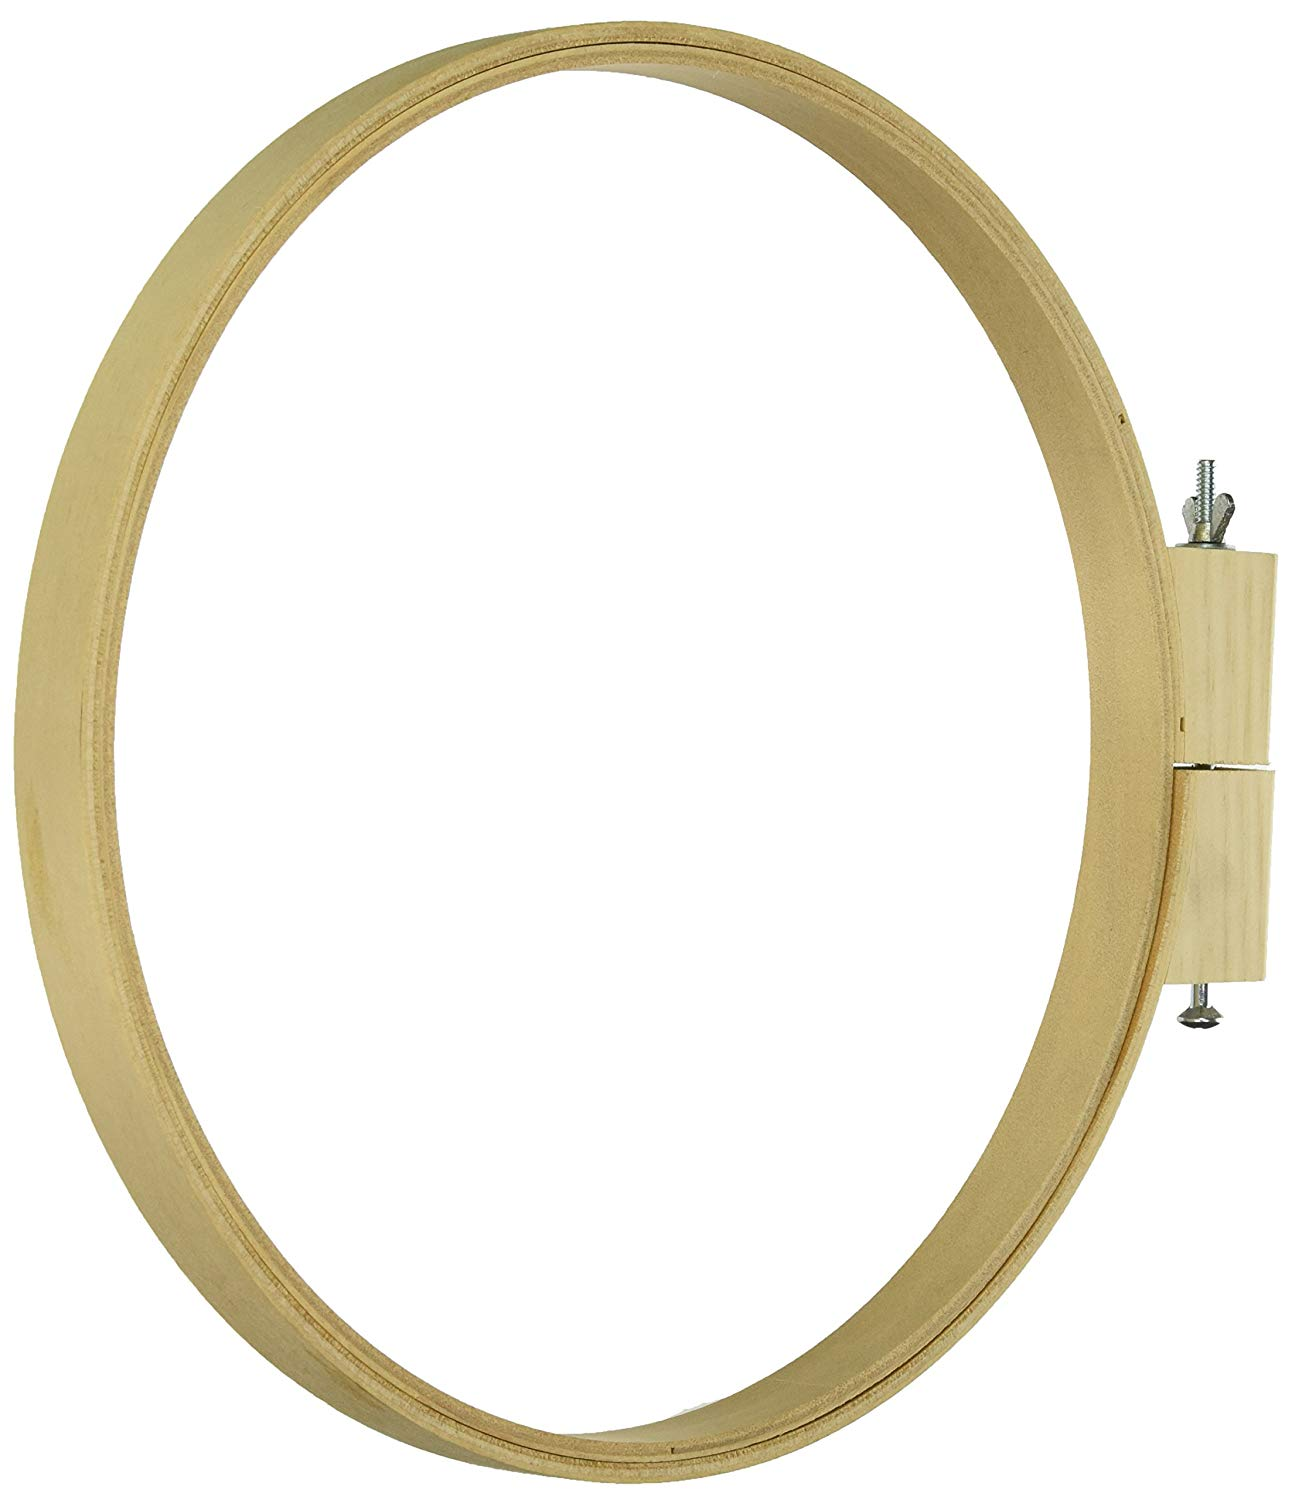 Darice Wood Quilting Hoops - Round - 10 Inches